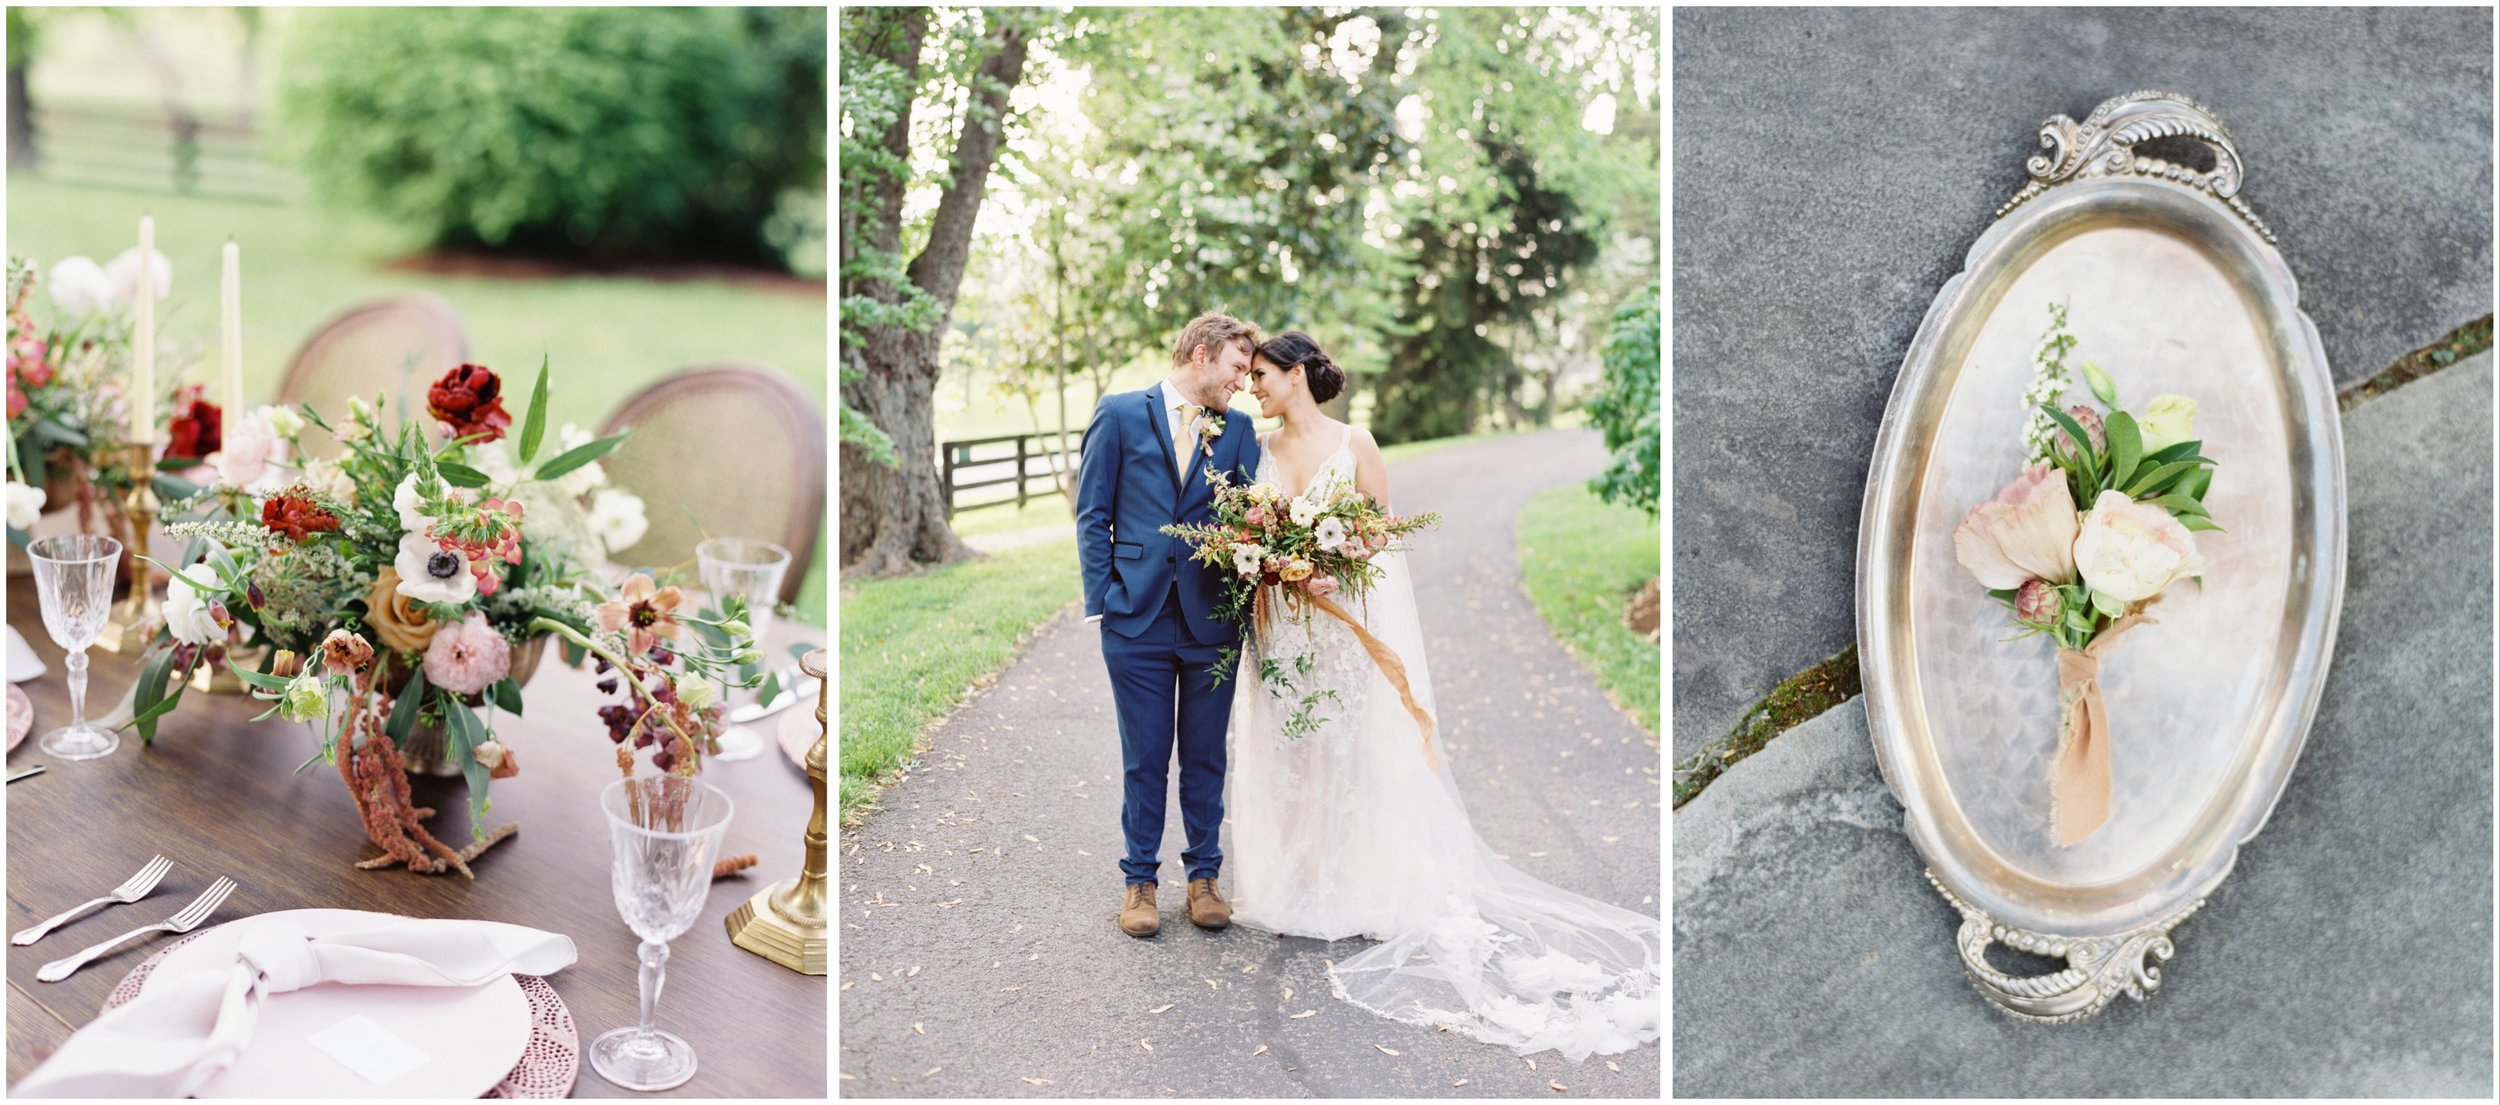 Laura Bodnar Photography Lexington Wedding Photographer Film Photography.JPEG